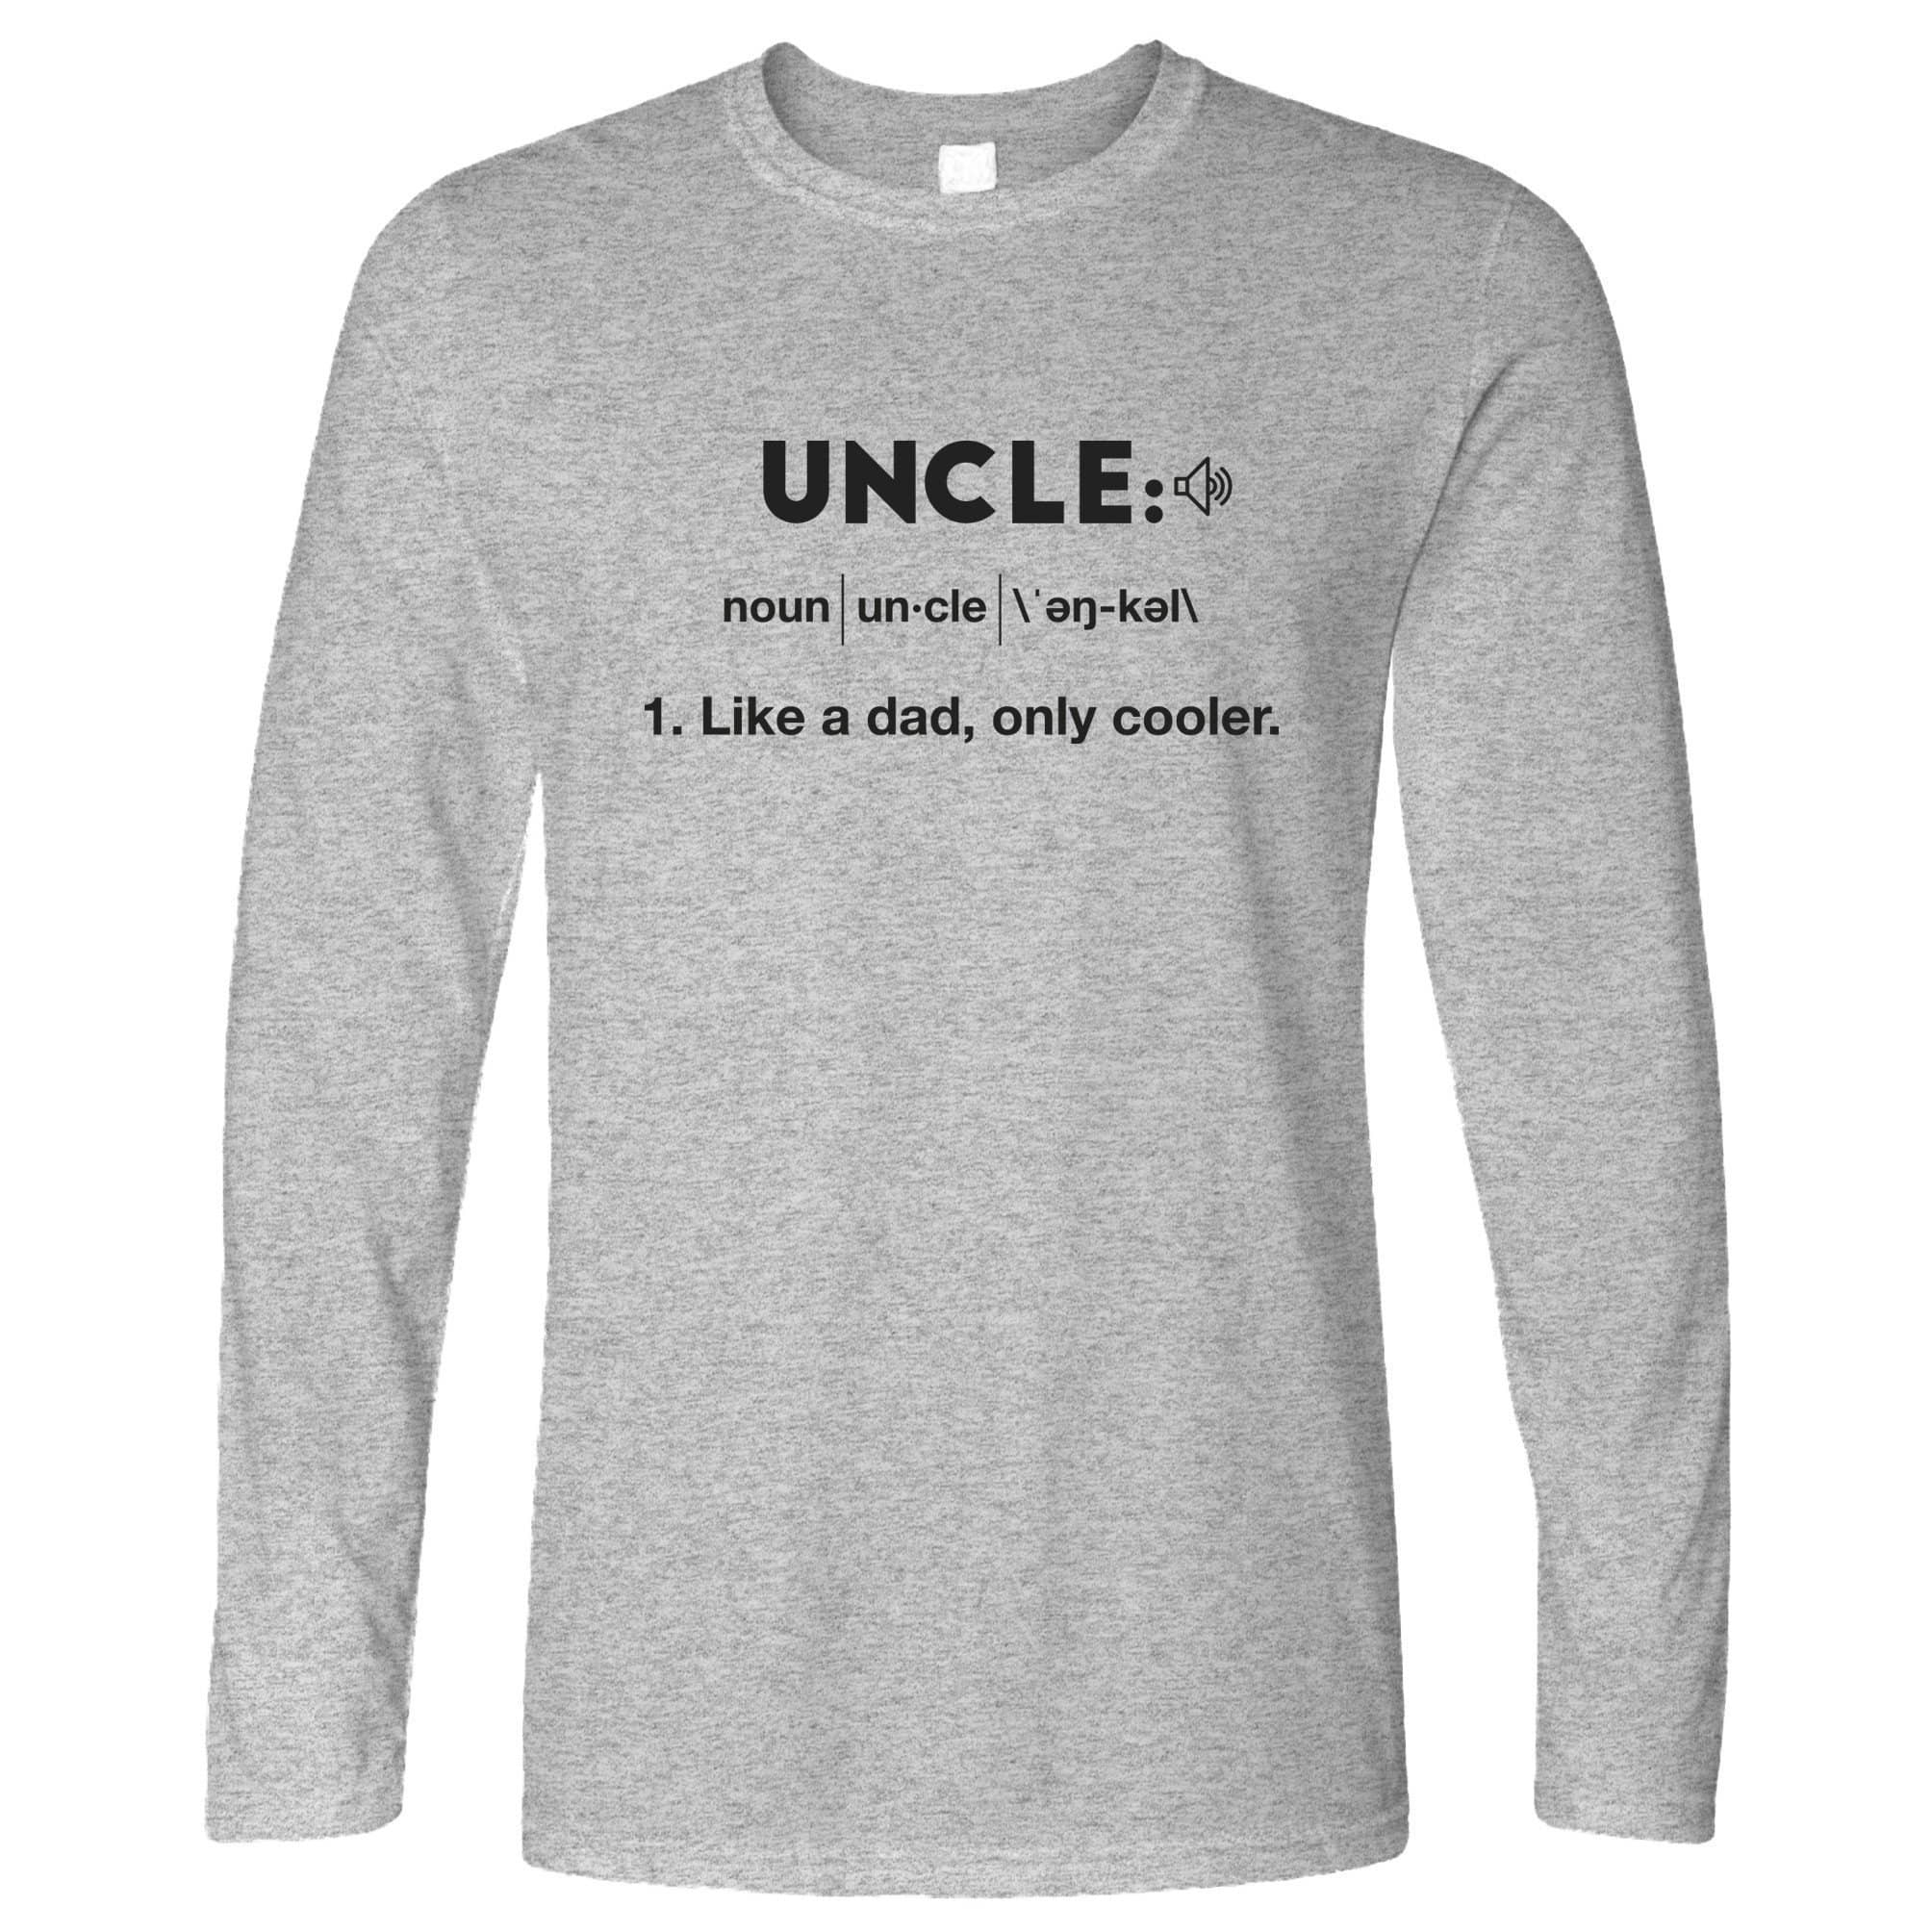 Novelty Long Sleeve Uncle: Like A Dad, Only Cooler Joke T-Shirt